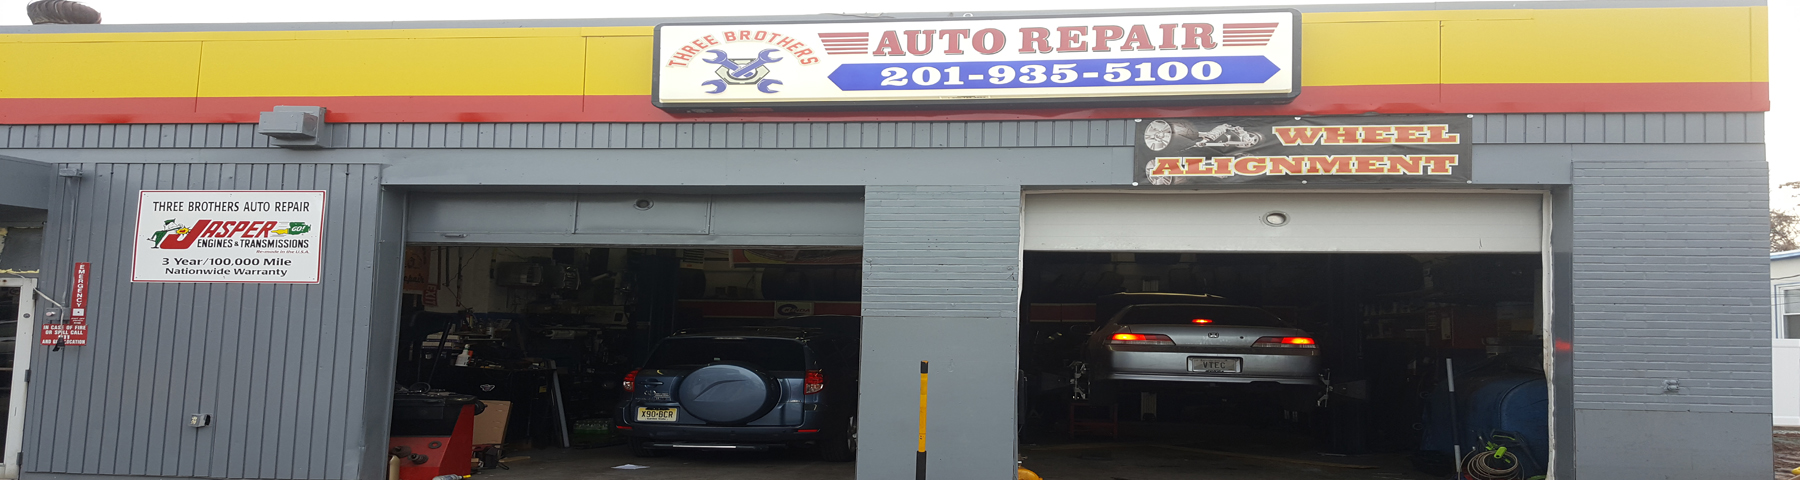 Three brothers auto repair expert auto repair east rutherford get a quote solutioingenieria Gallery